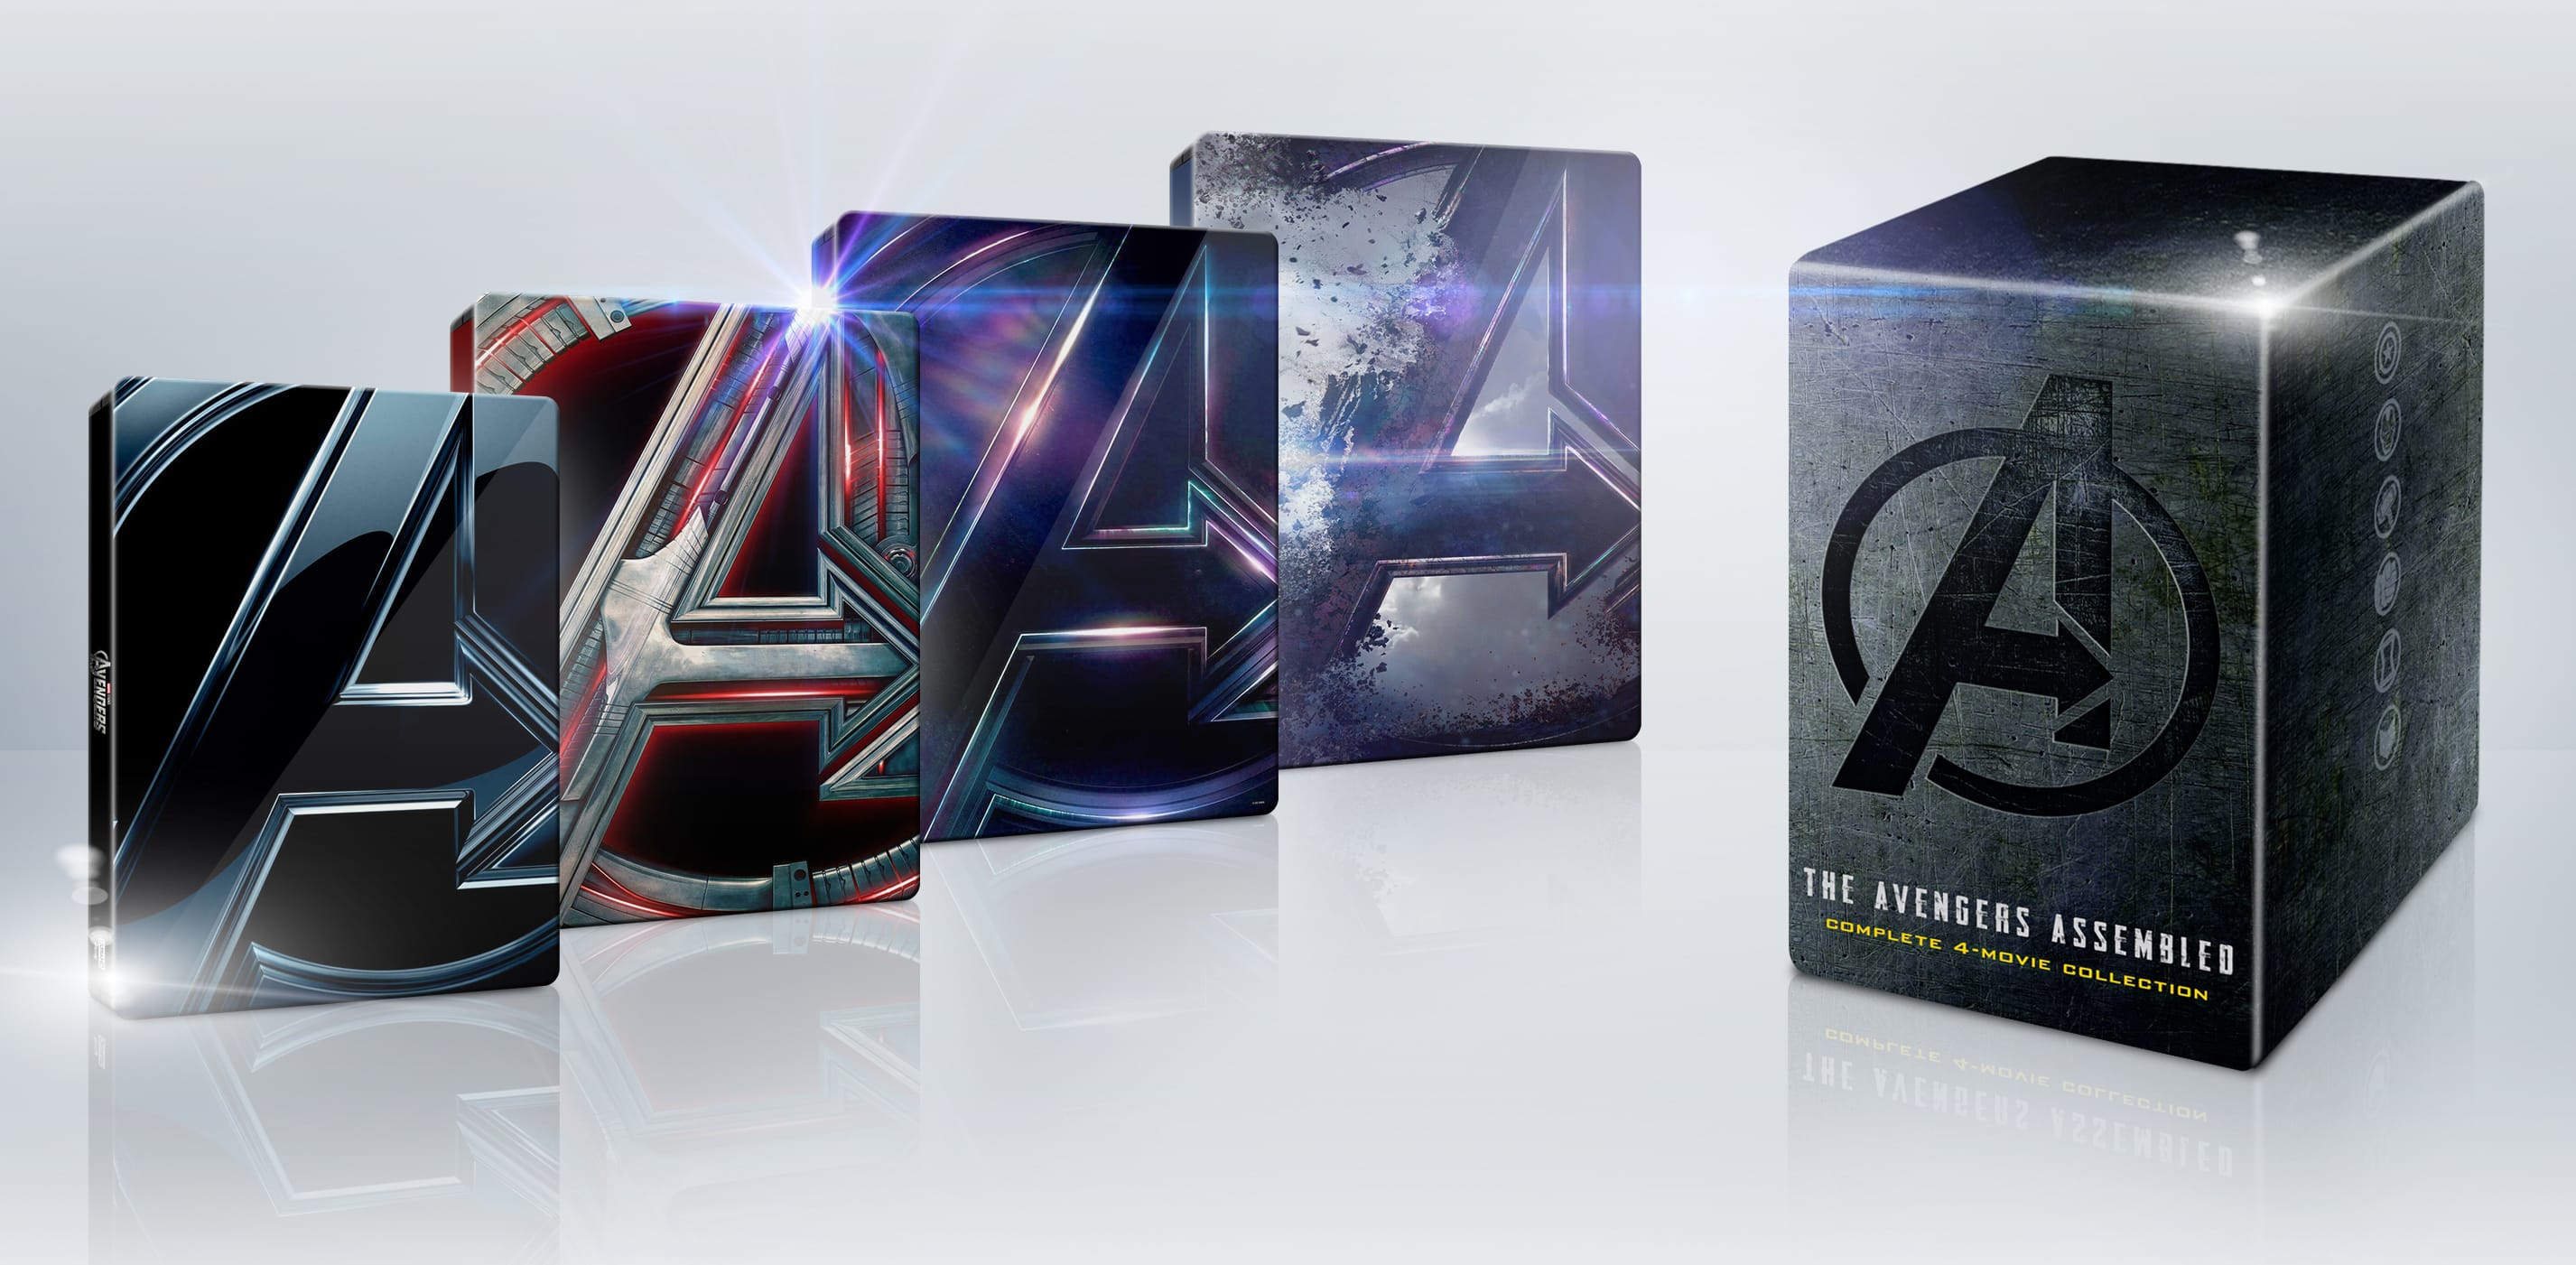 Avengers 4-Movie Collection [SteelBook] [Dig Copy] [4K Ultra HD Blu-ray/Blu-ray] [Only @ Best Buy] $119.99